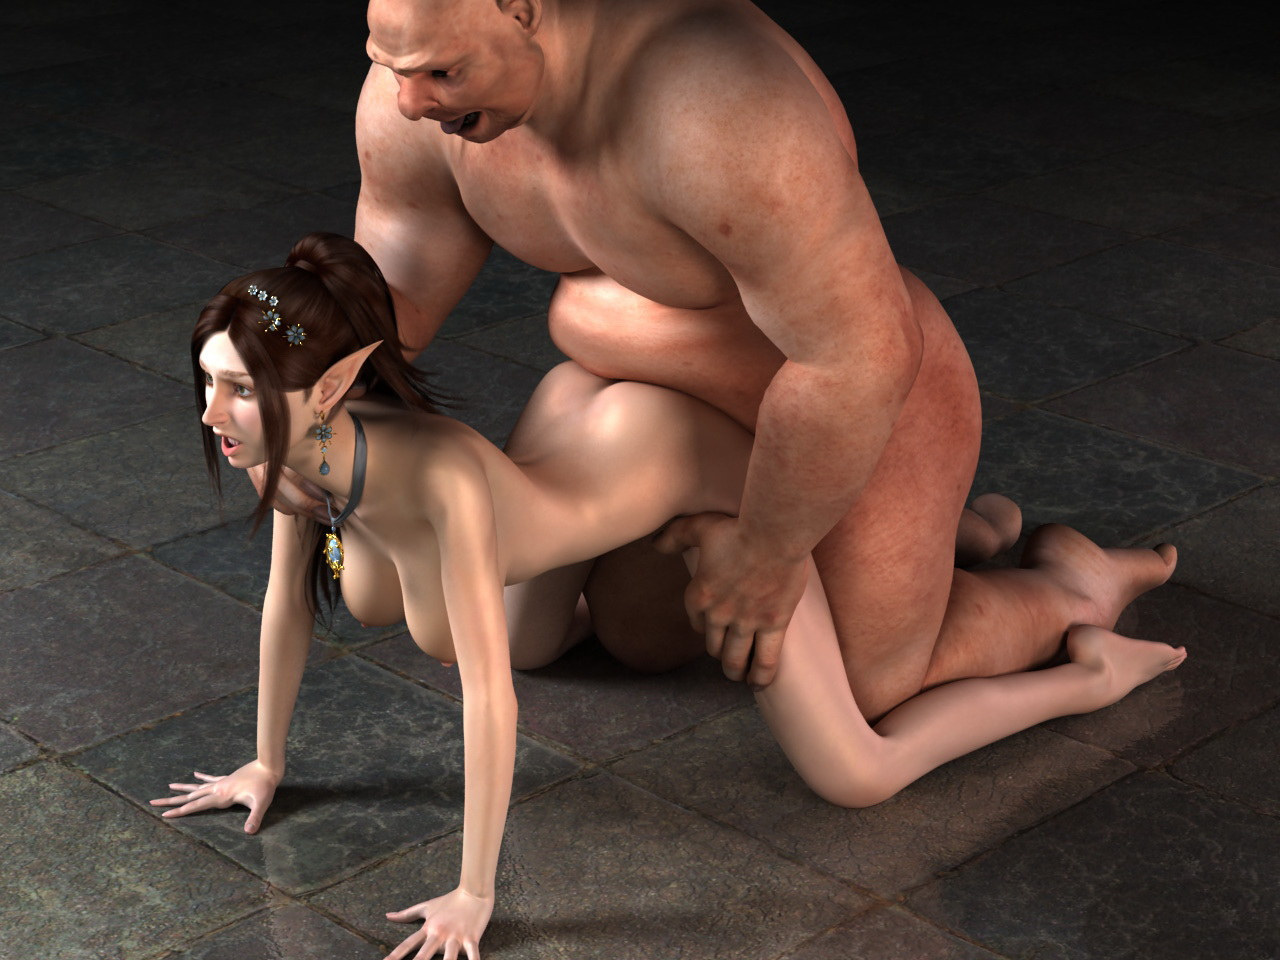 3d sex gams sex pictures